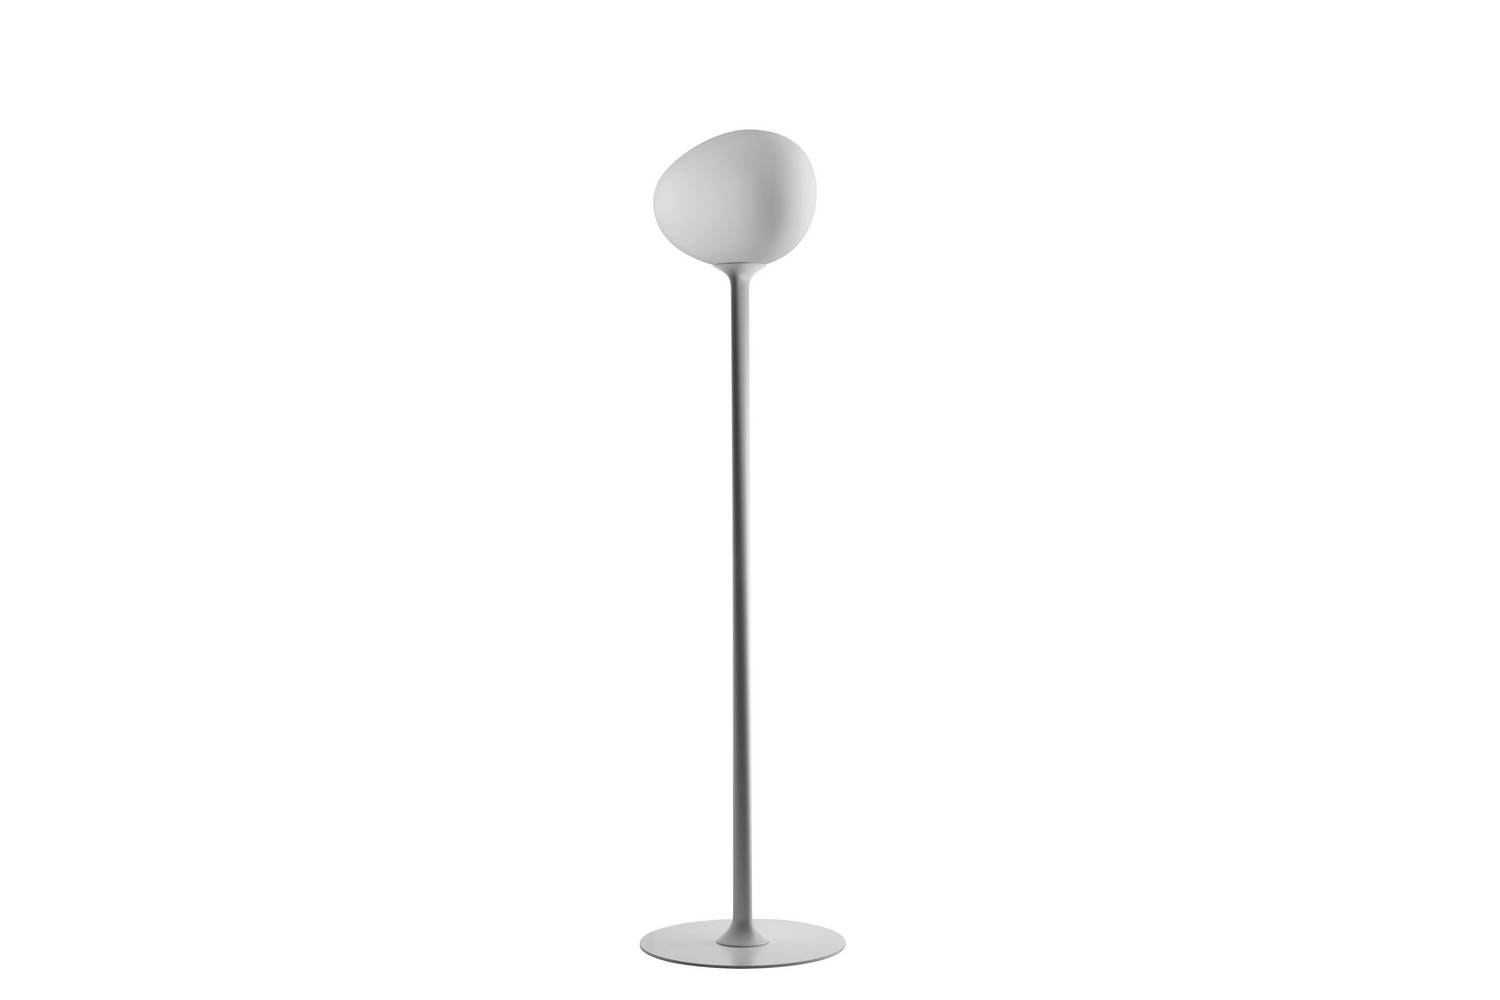 Gregg Floor Lamp by Ludovica & Roberto Palomba for Foscarini